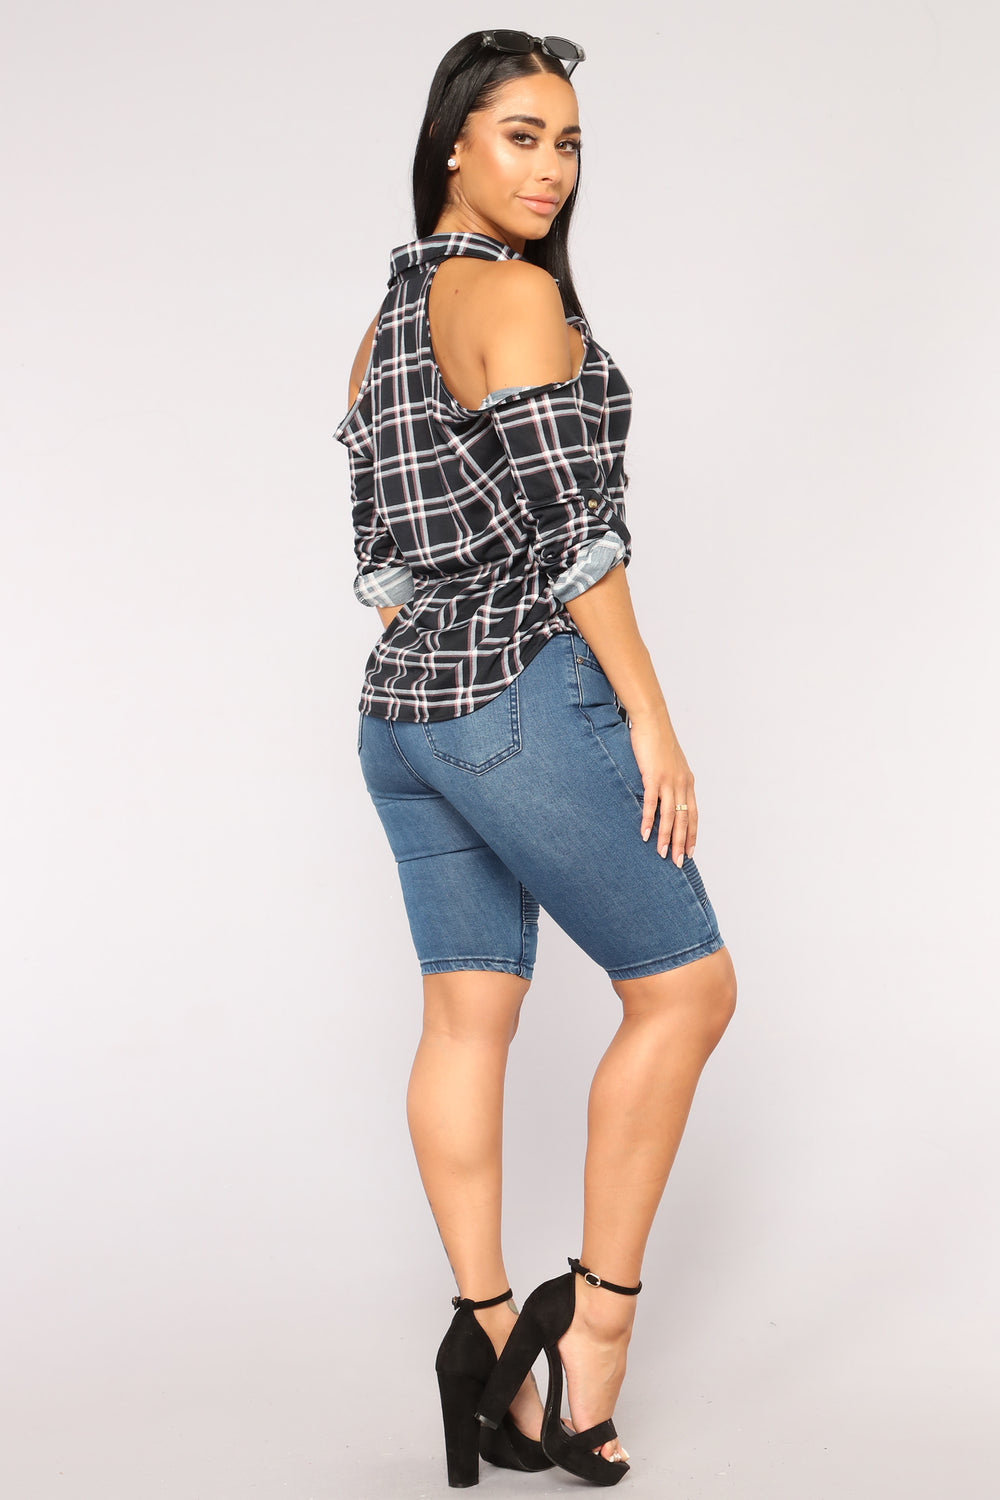 New Day New Plaid Top - Black Combo